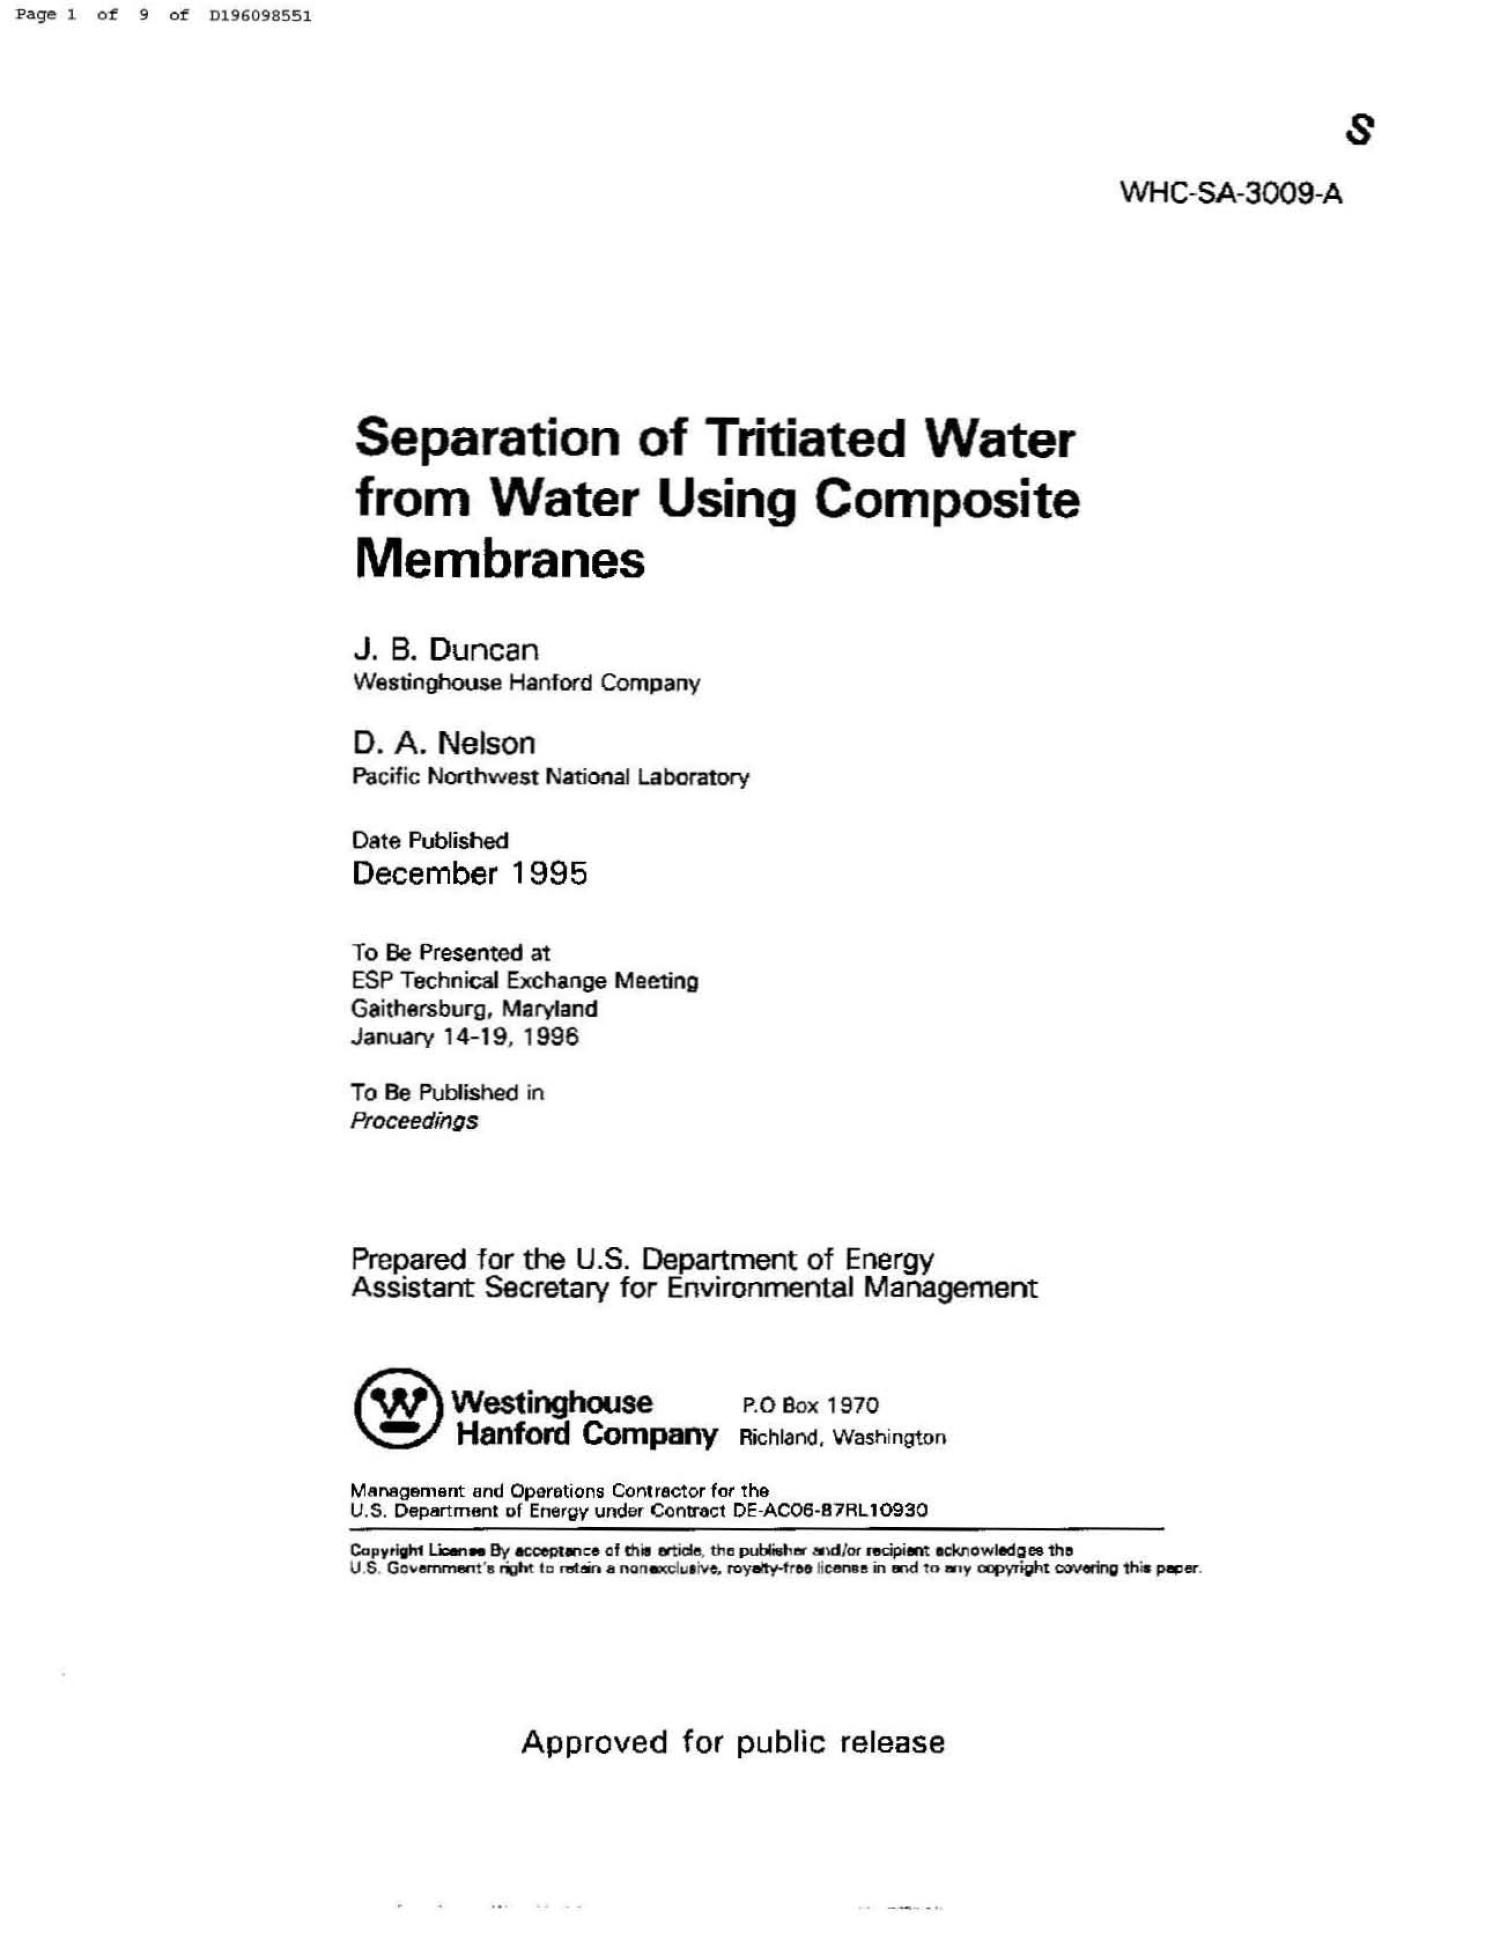 SEPARATION OF TRITIATED WATER FROM WATER USING COMPOSITE MEMBRANES                                                                                                      [Sequence #]: 1 of 7